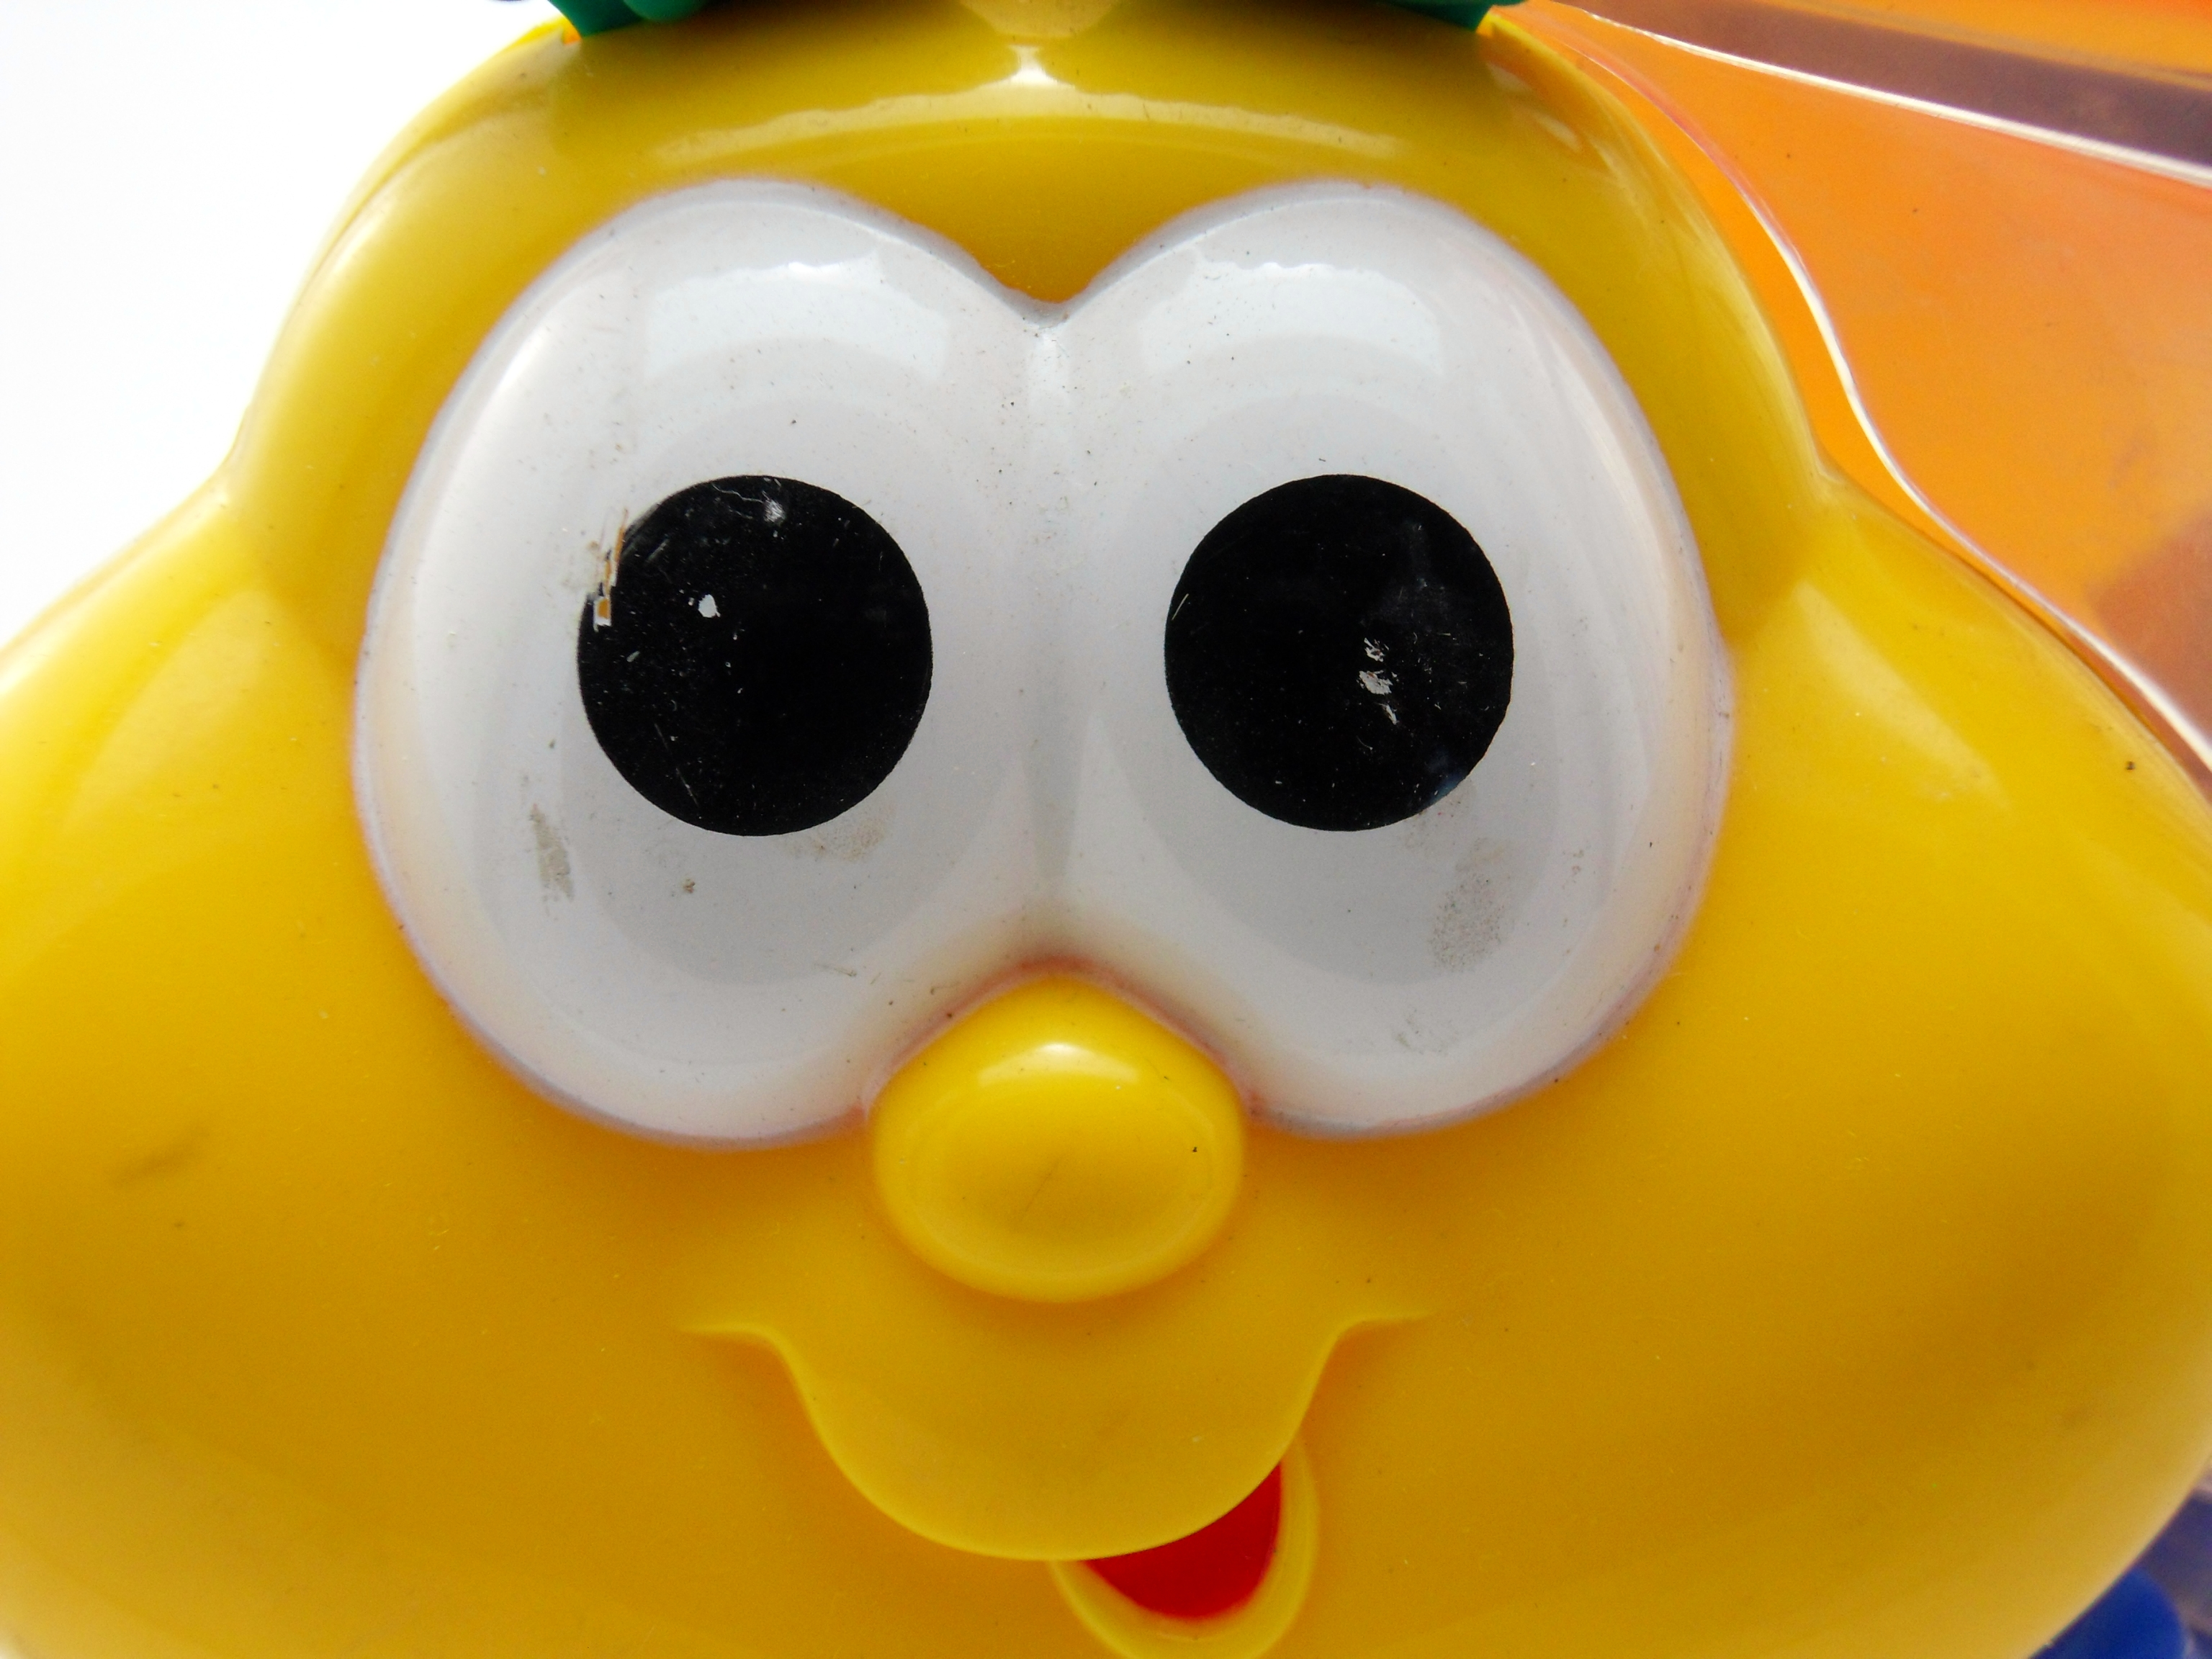 Toy close up photo